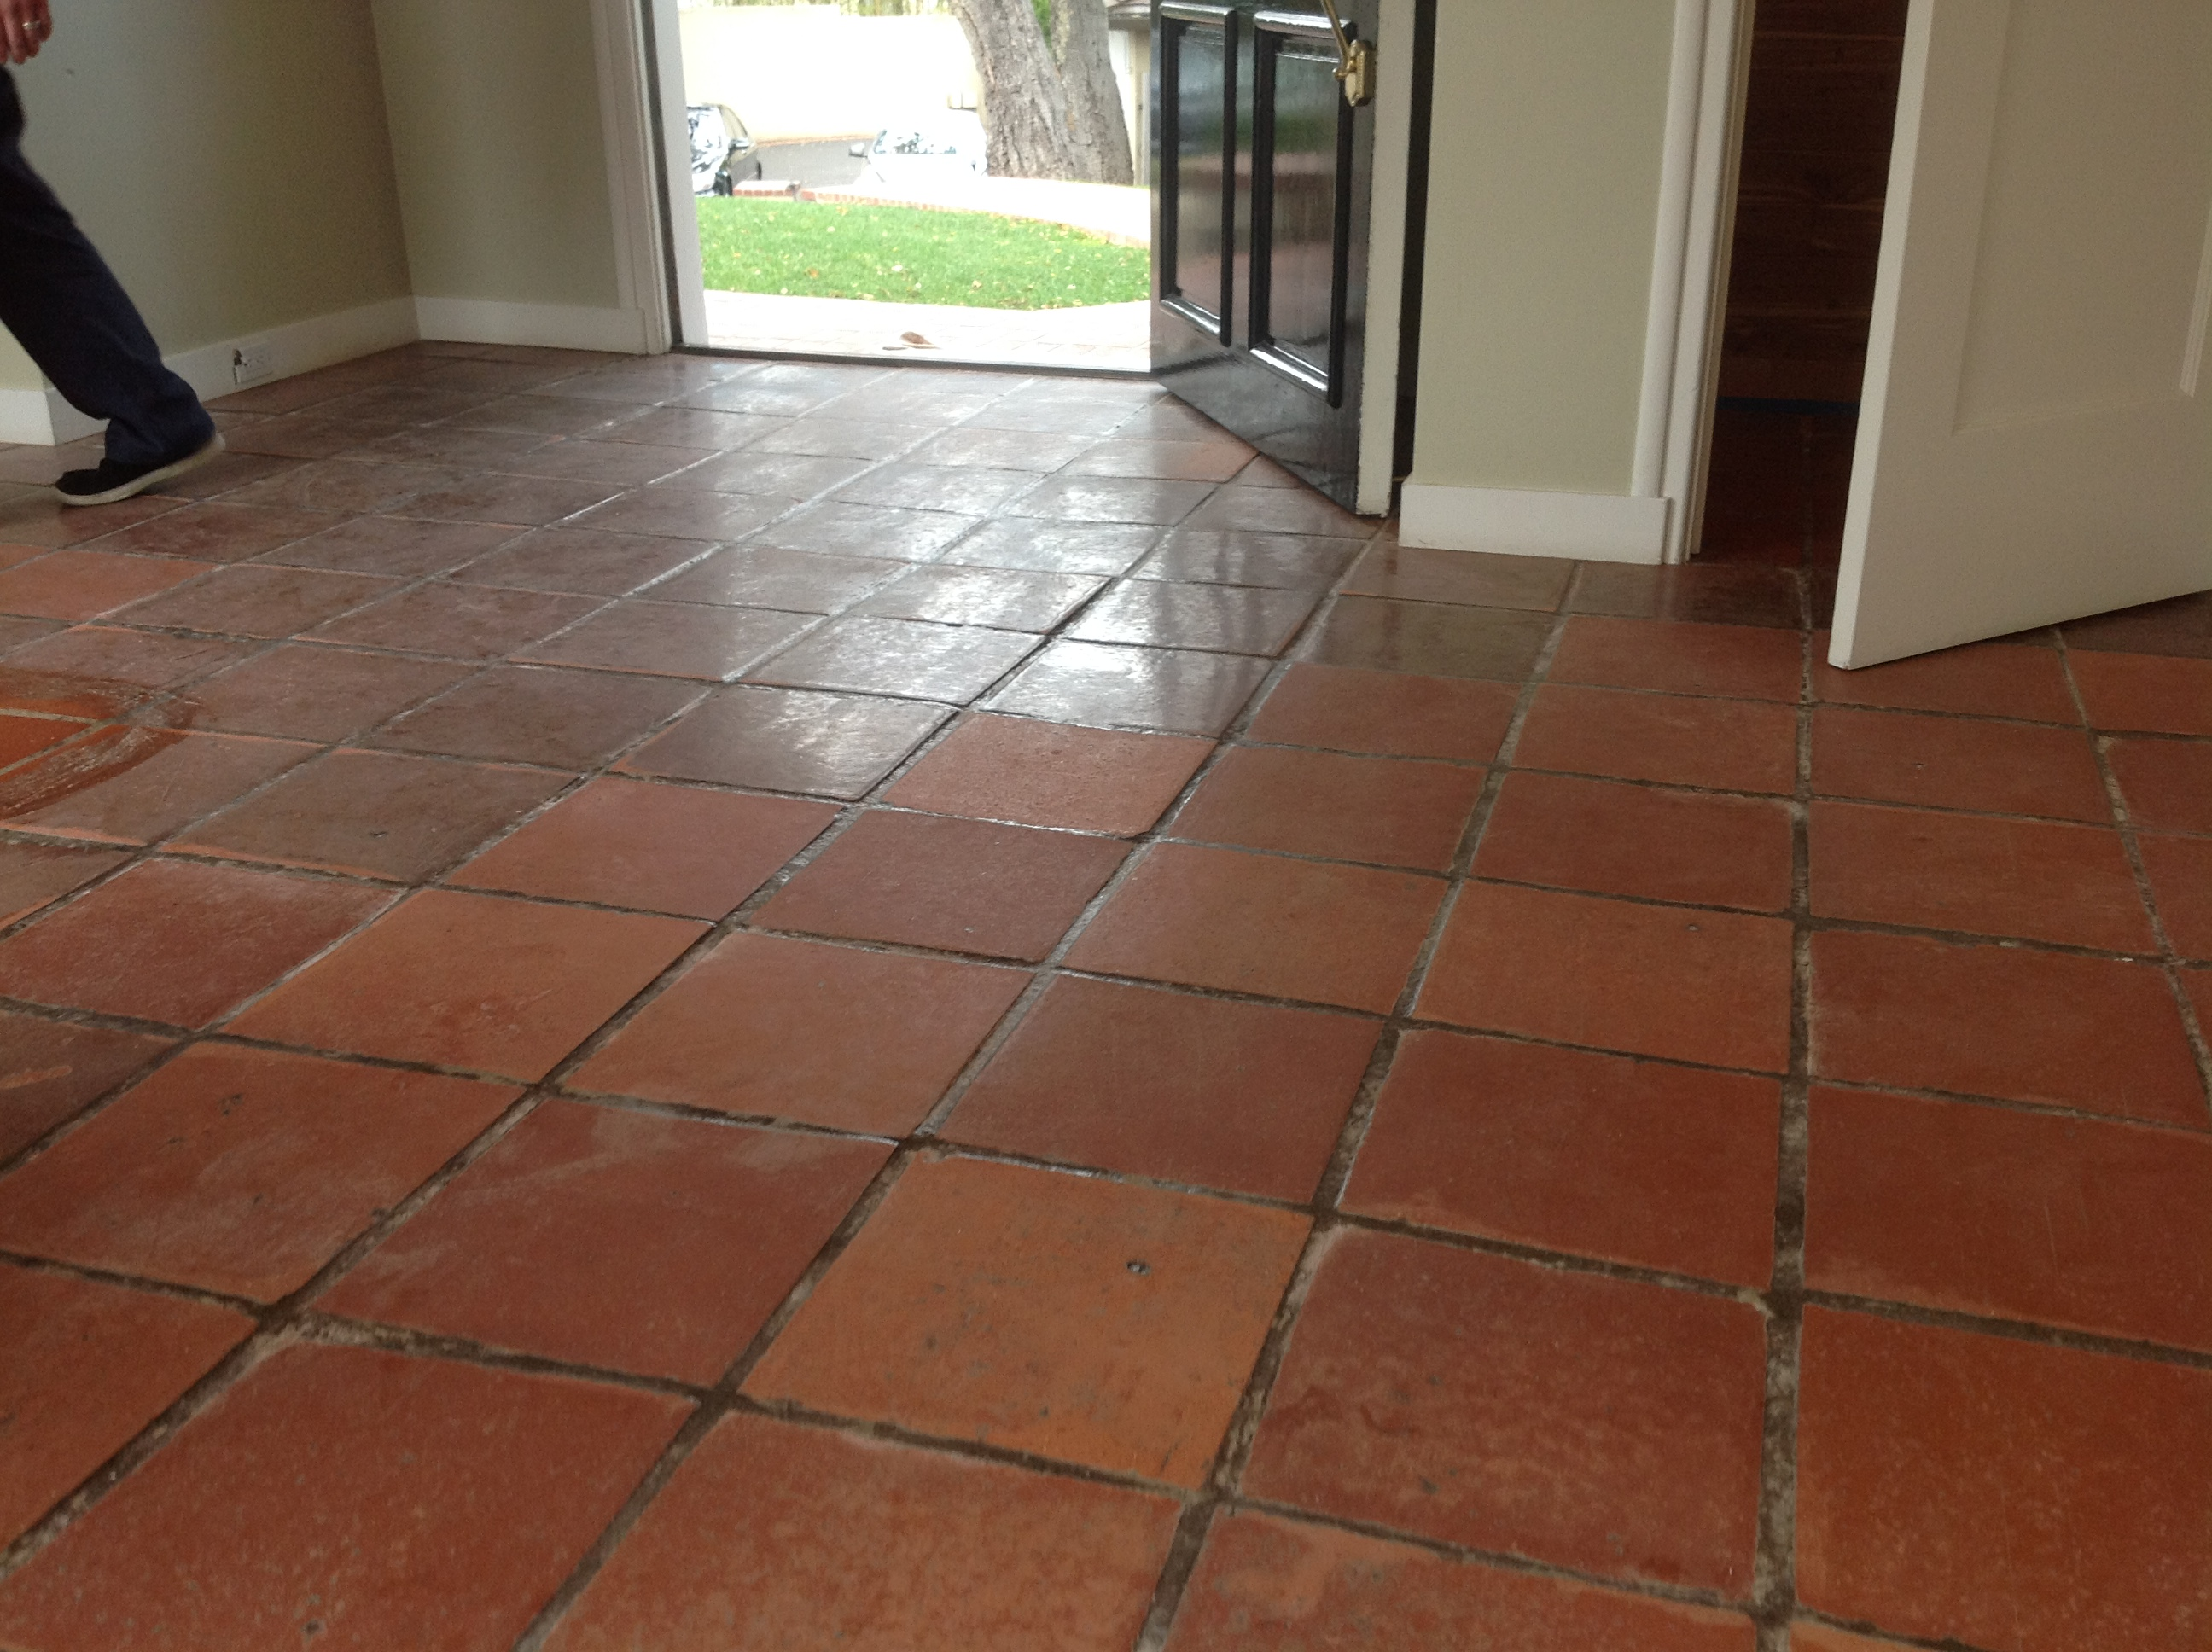 Expert Wax Removal Specialist Of All Antique Pavers